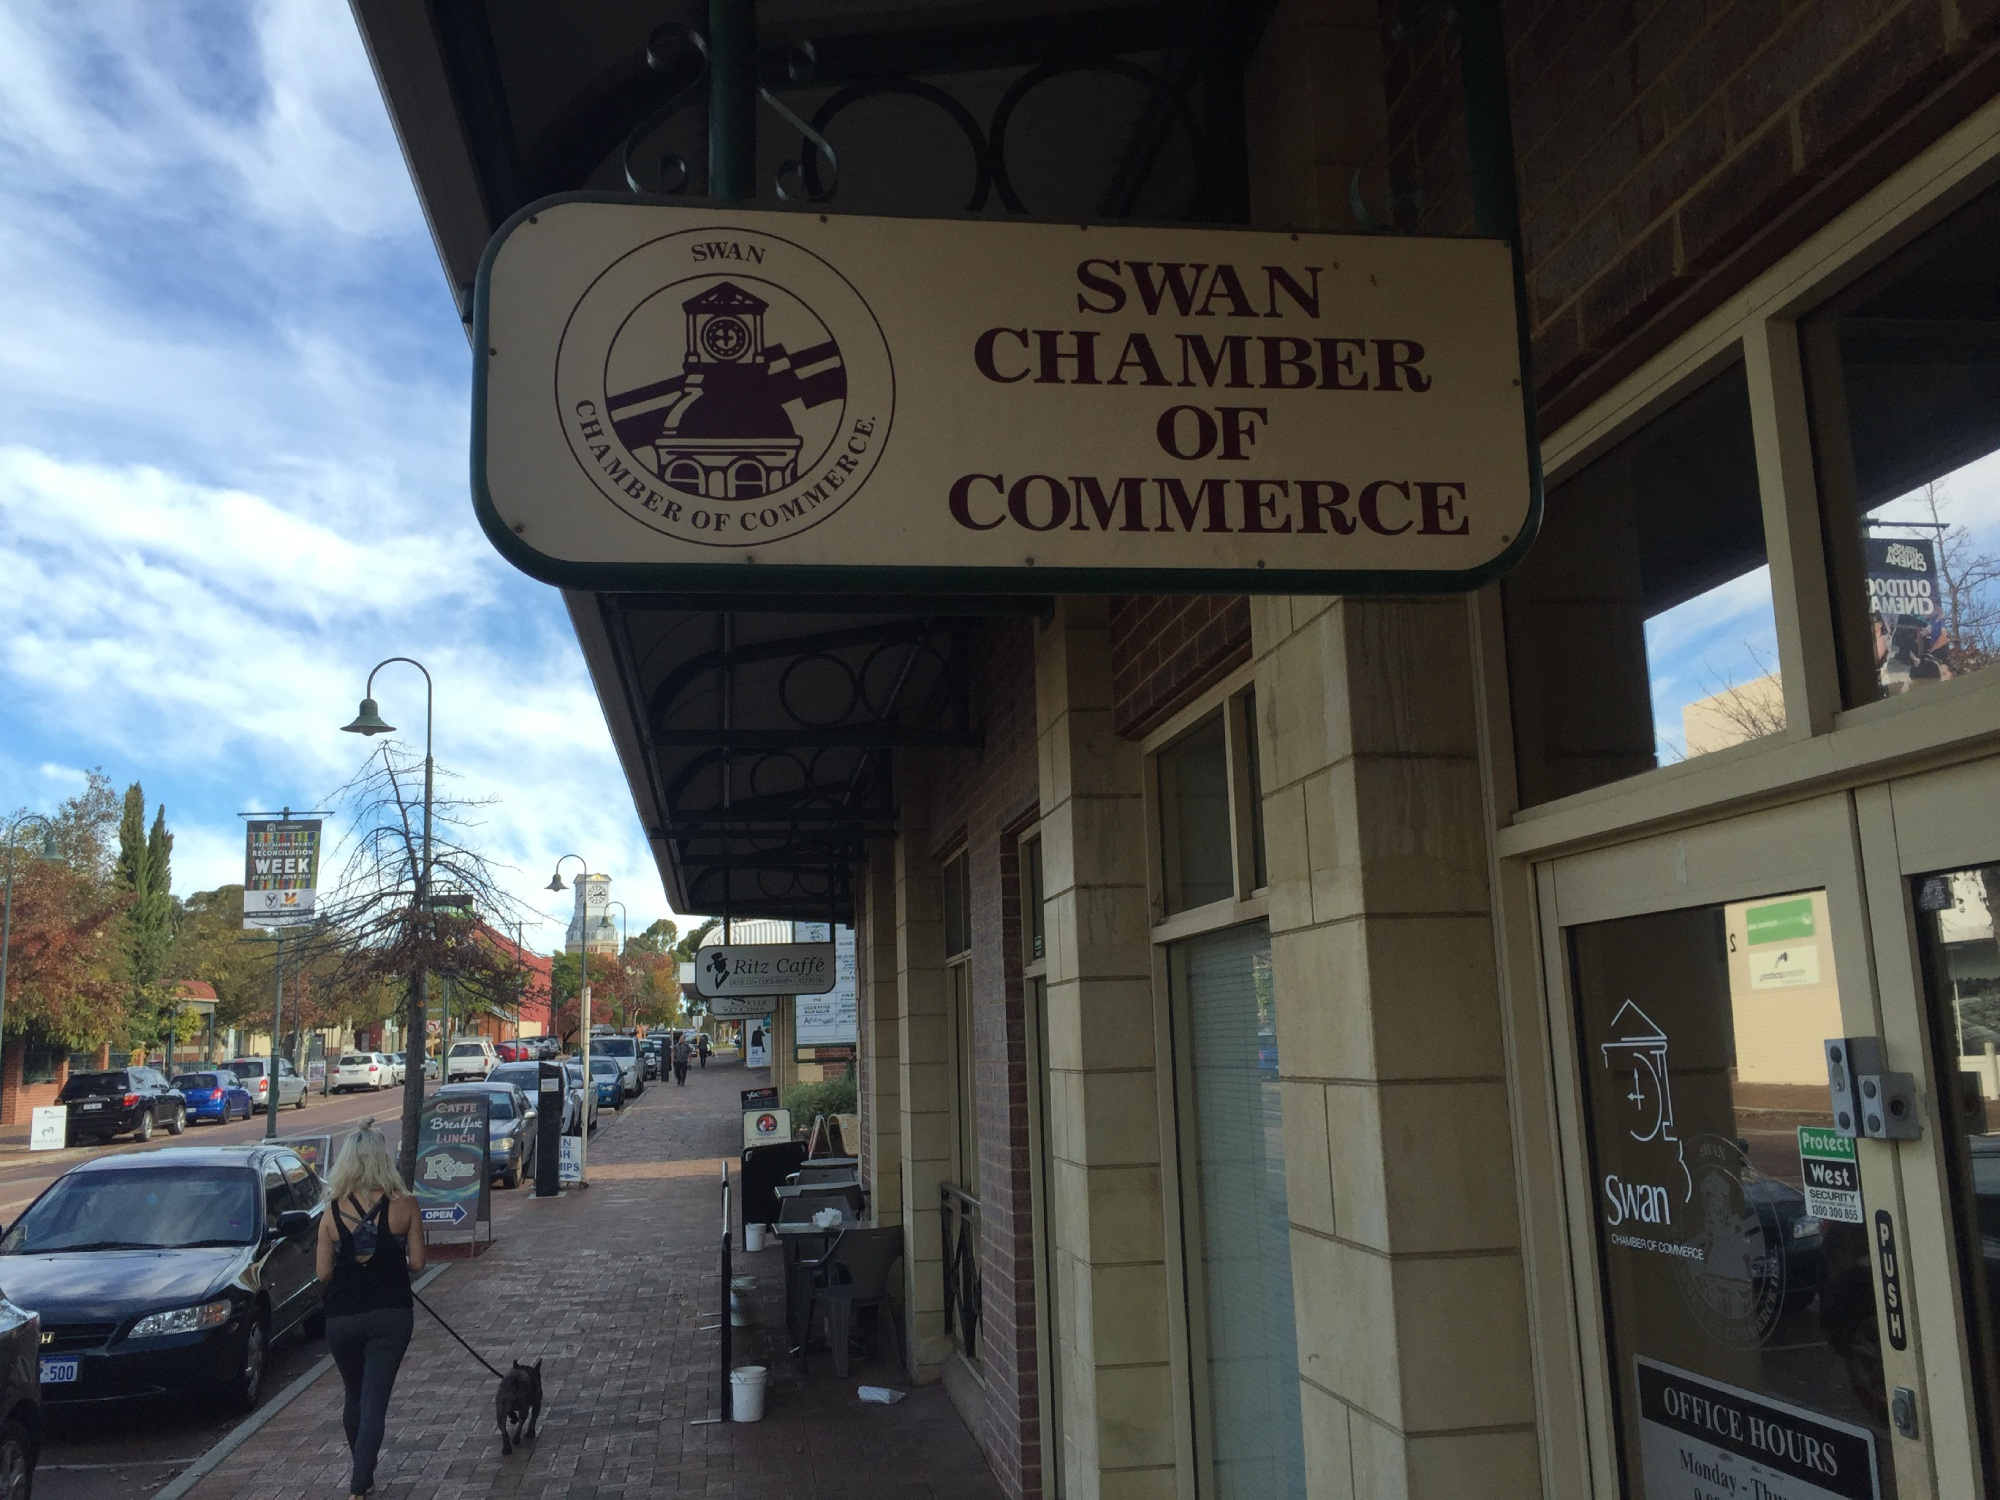 Swan Chamber of Commerce hosts networking events for small business operators